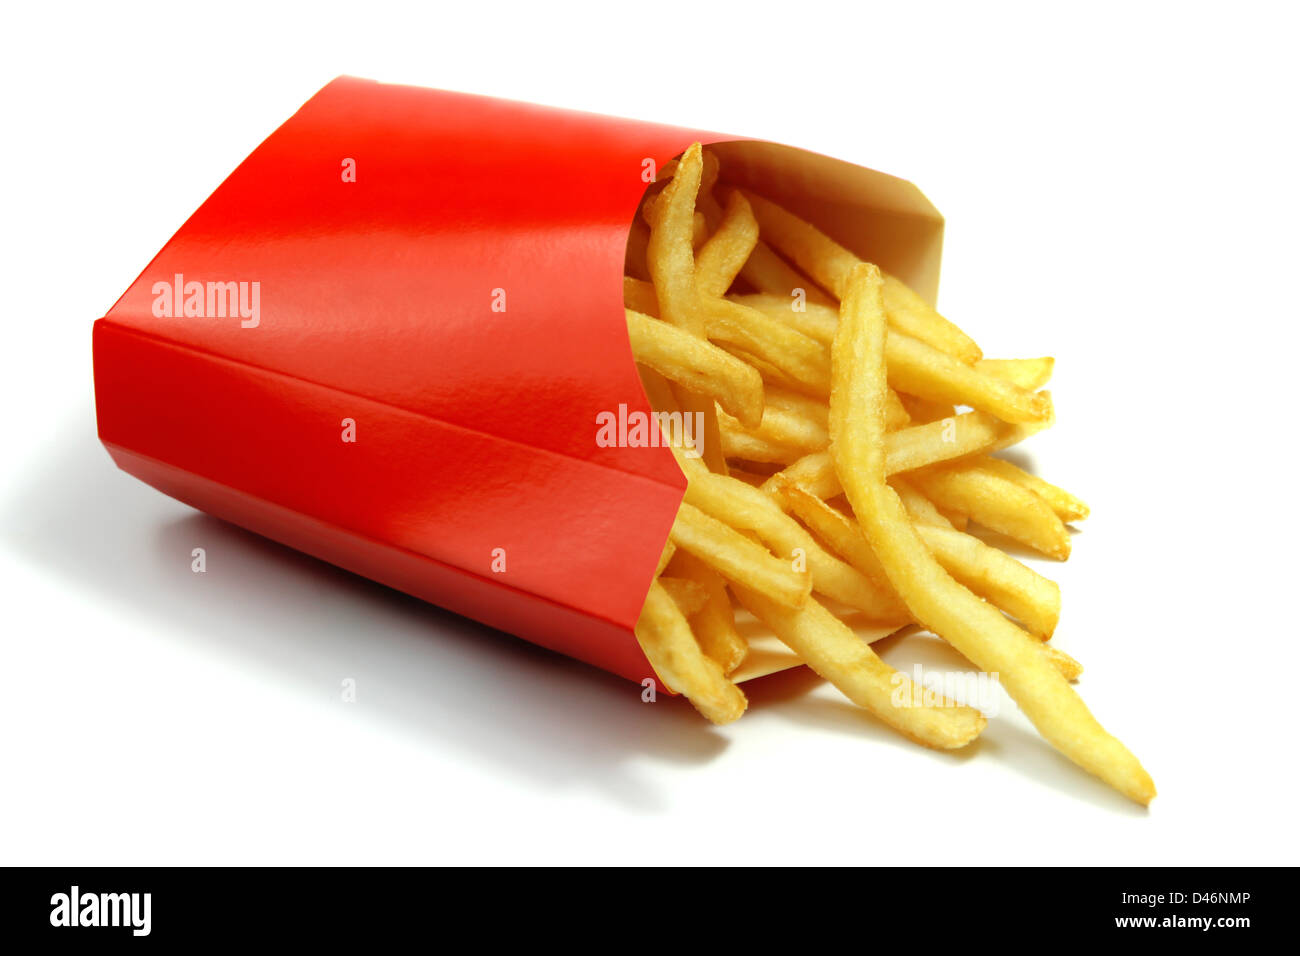 french fries in a red paper wrapper - Stock Image